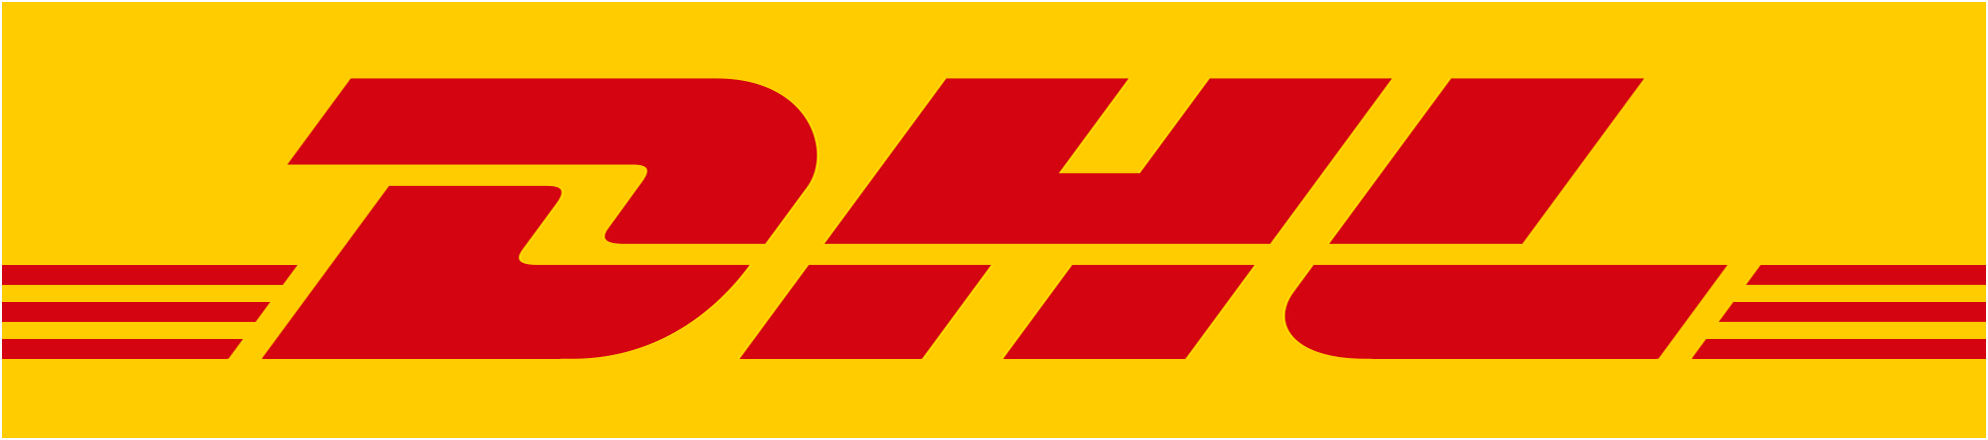 "<p><span style=""color: rgb(51, 51, 51);"">At DHL, people mean the world to us. That's why our goal has always been to attract and retain the best talent over the world. We provide challenge and opportunity for personal and professional development. We recognize the difference you bring to our business, and together we share the pride of building THE logistics company for the world. </span></p><p><br></p><p><span style=""color: rgb(51, 51, 51);""><span class=""ql-cursor""></span>Under the DHL Supply Chain umbrella, one of the business units of DHL, we provide customized logistics and industry solutions in the areas of supply chain management, warehousing, distribution, value added services, and lead logistics provider services for our customers – helping them deliver better results everyday.</span></p>"